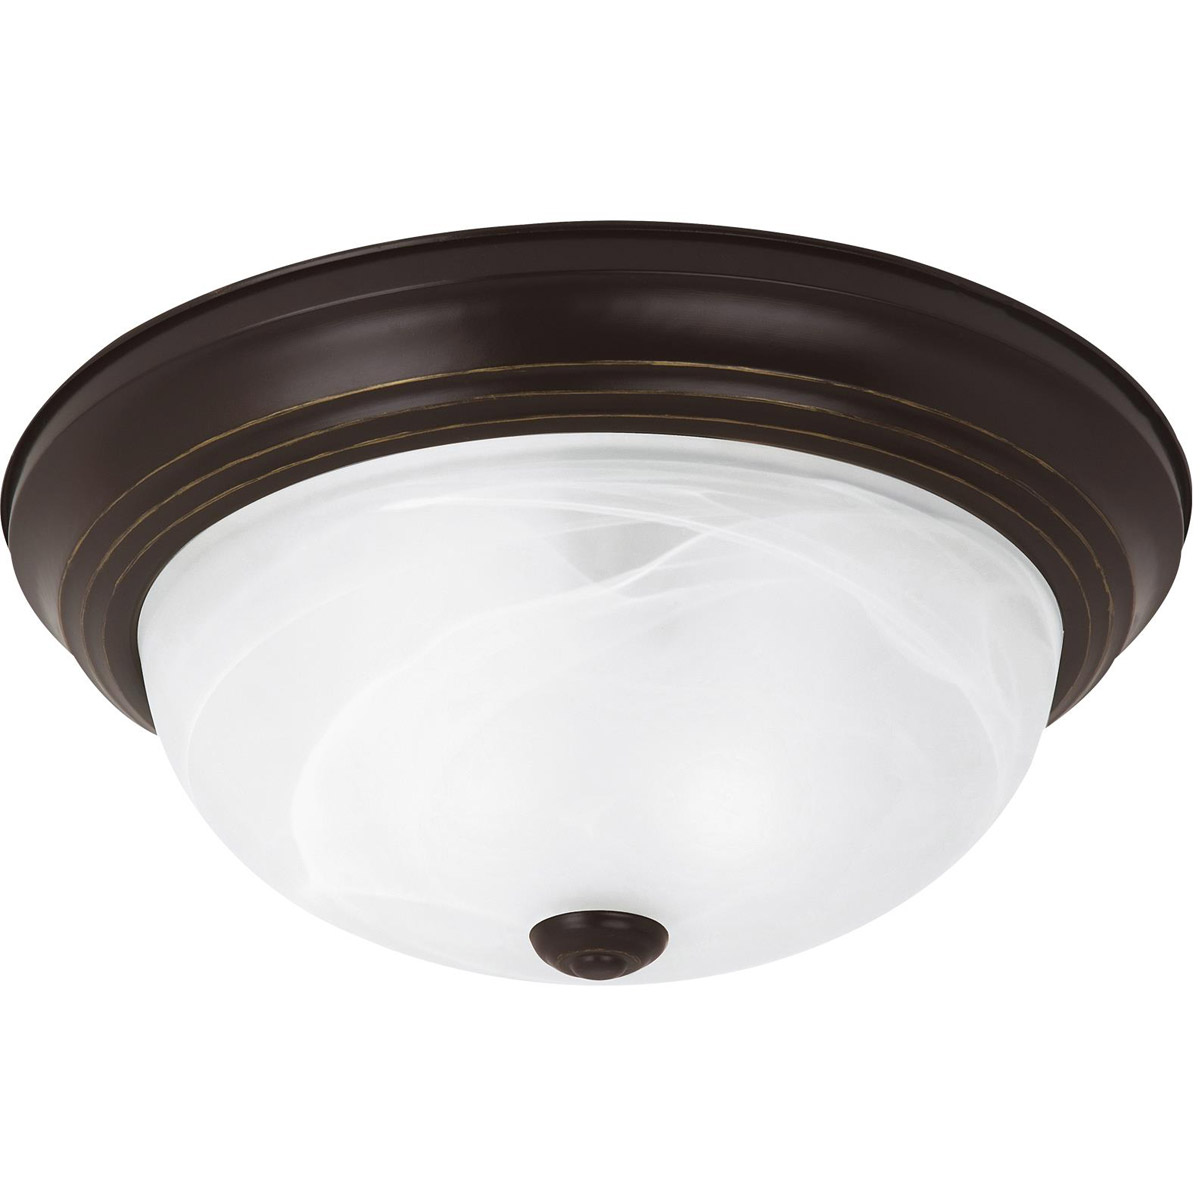 Sea Gull Lighting Windgate 3 Light Flush Mount in Heirloom Bronze 75943-782